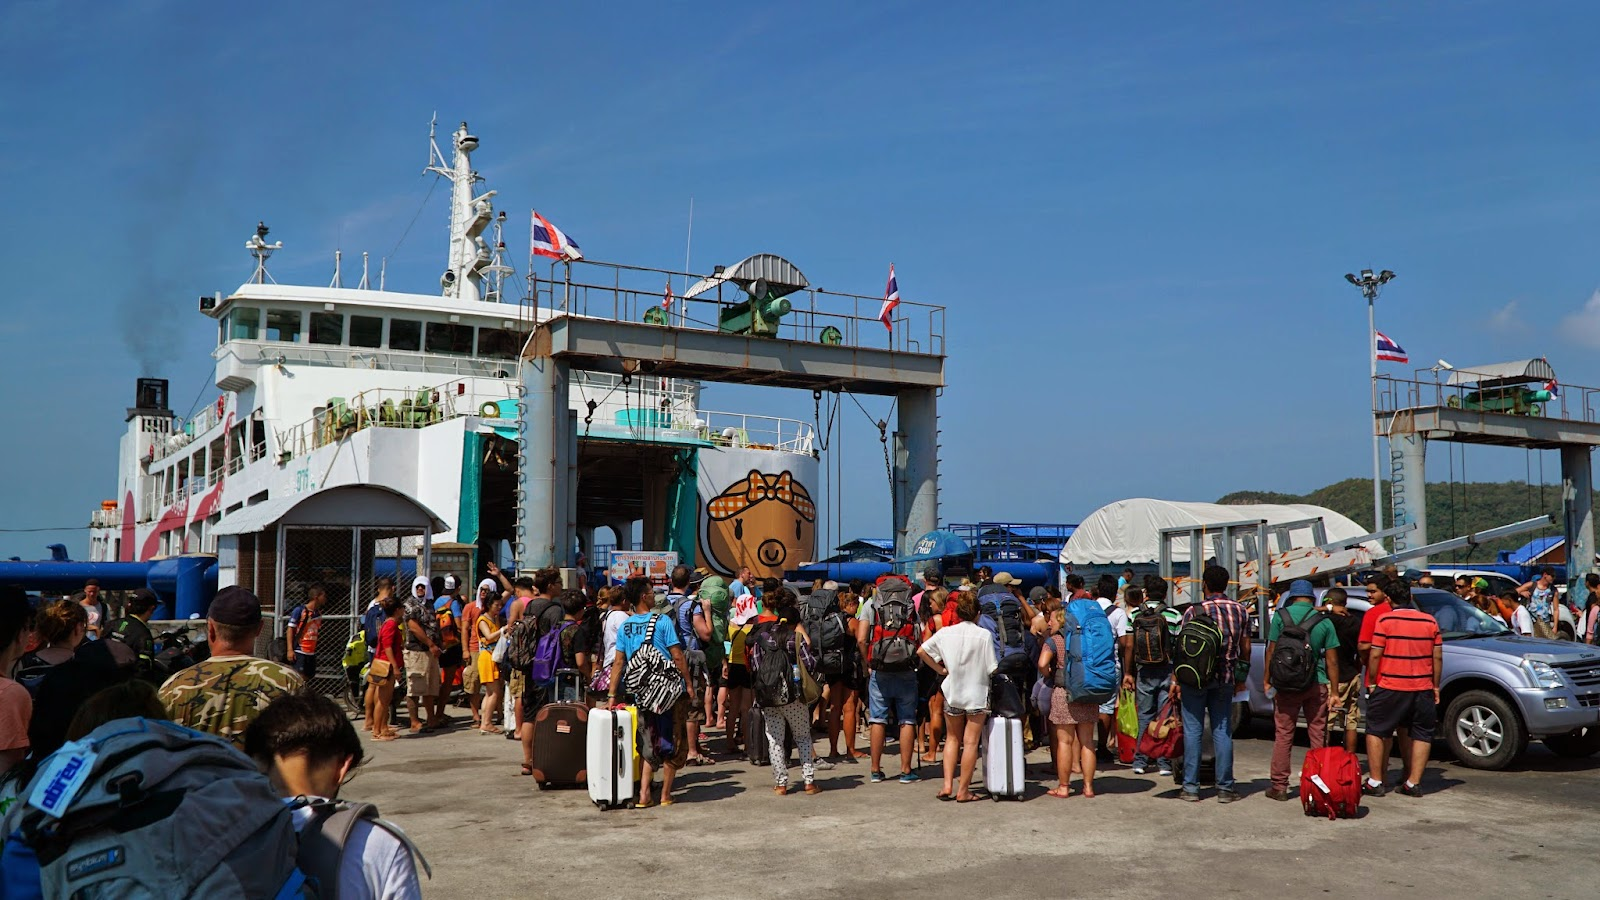 Queuing up at Thong Sala pier to get onto the ferry